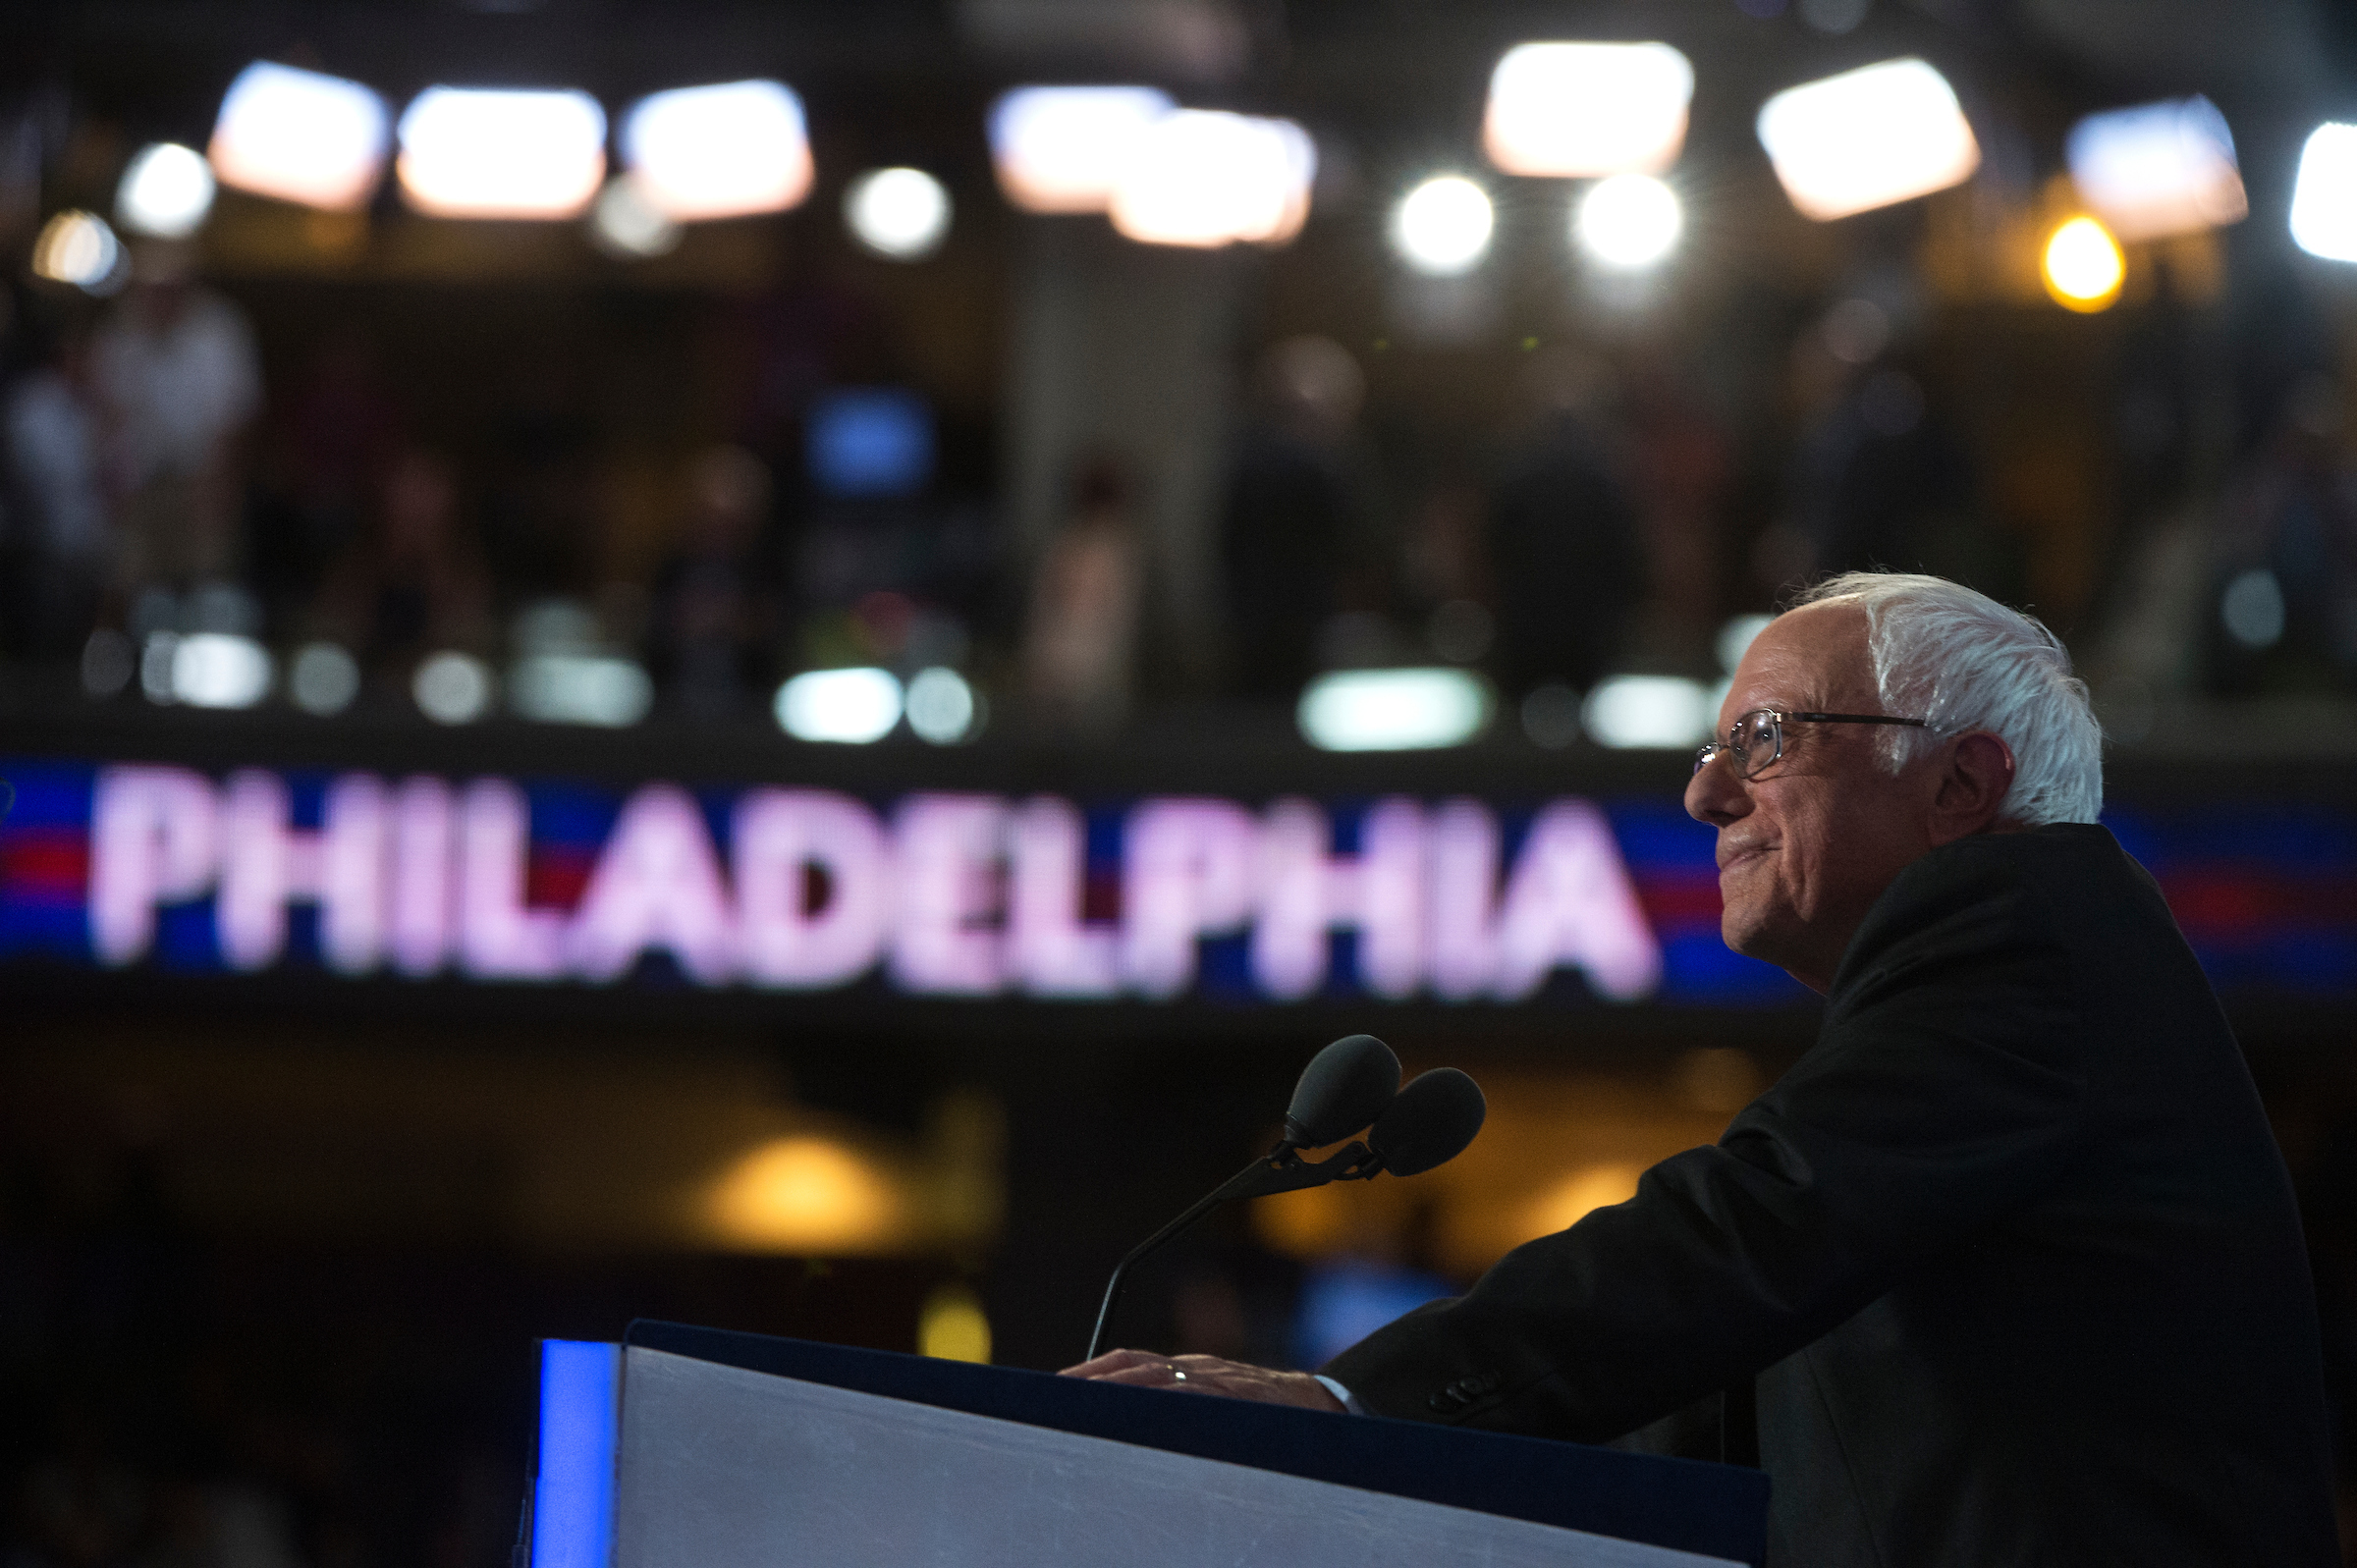 Vermont Sen. Bernie Sanders addresses the crowd at the Democratic convention Monday. (Tom Williams/CQ Roll Call)